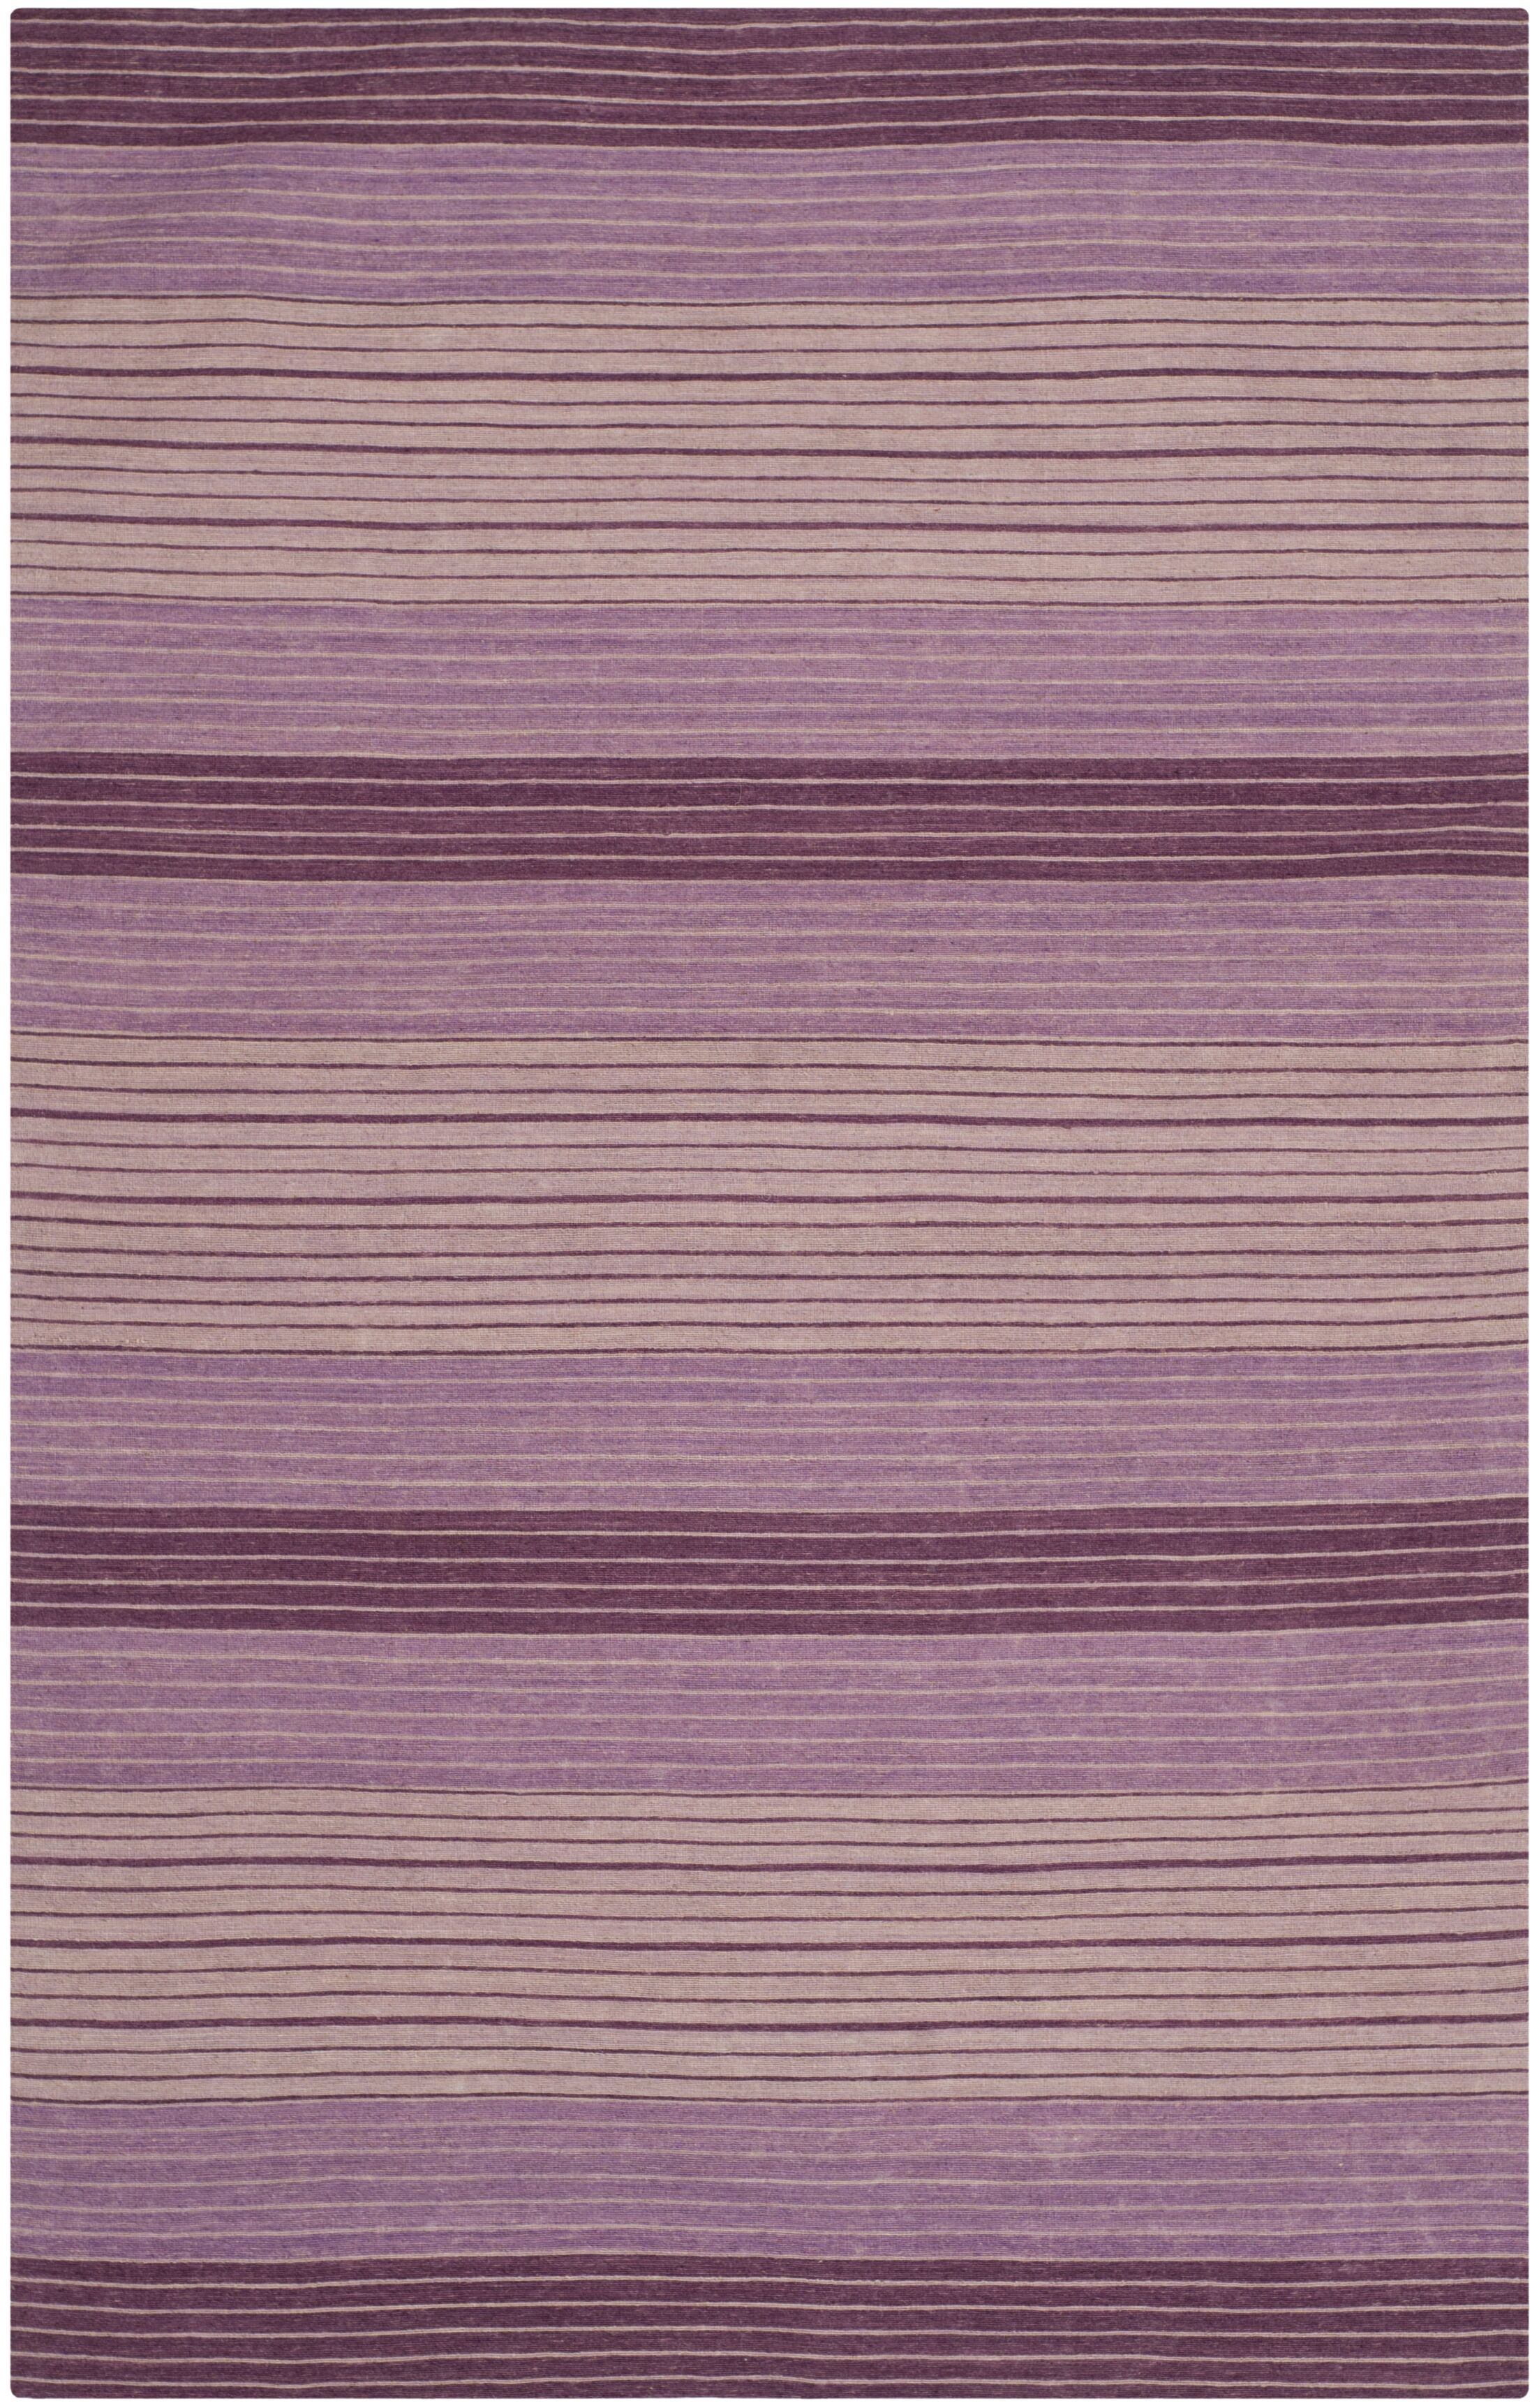 Jefferson Hand Woven Cotton Purple Area Rug Rug Size: Rectangle 4' x 6'